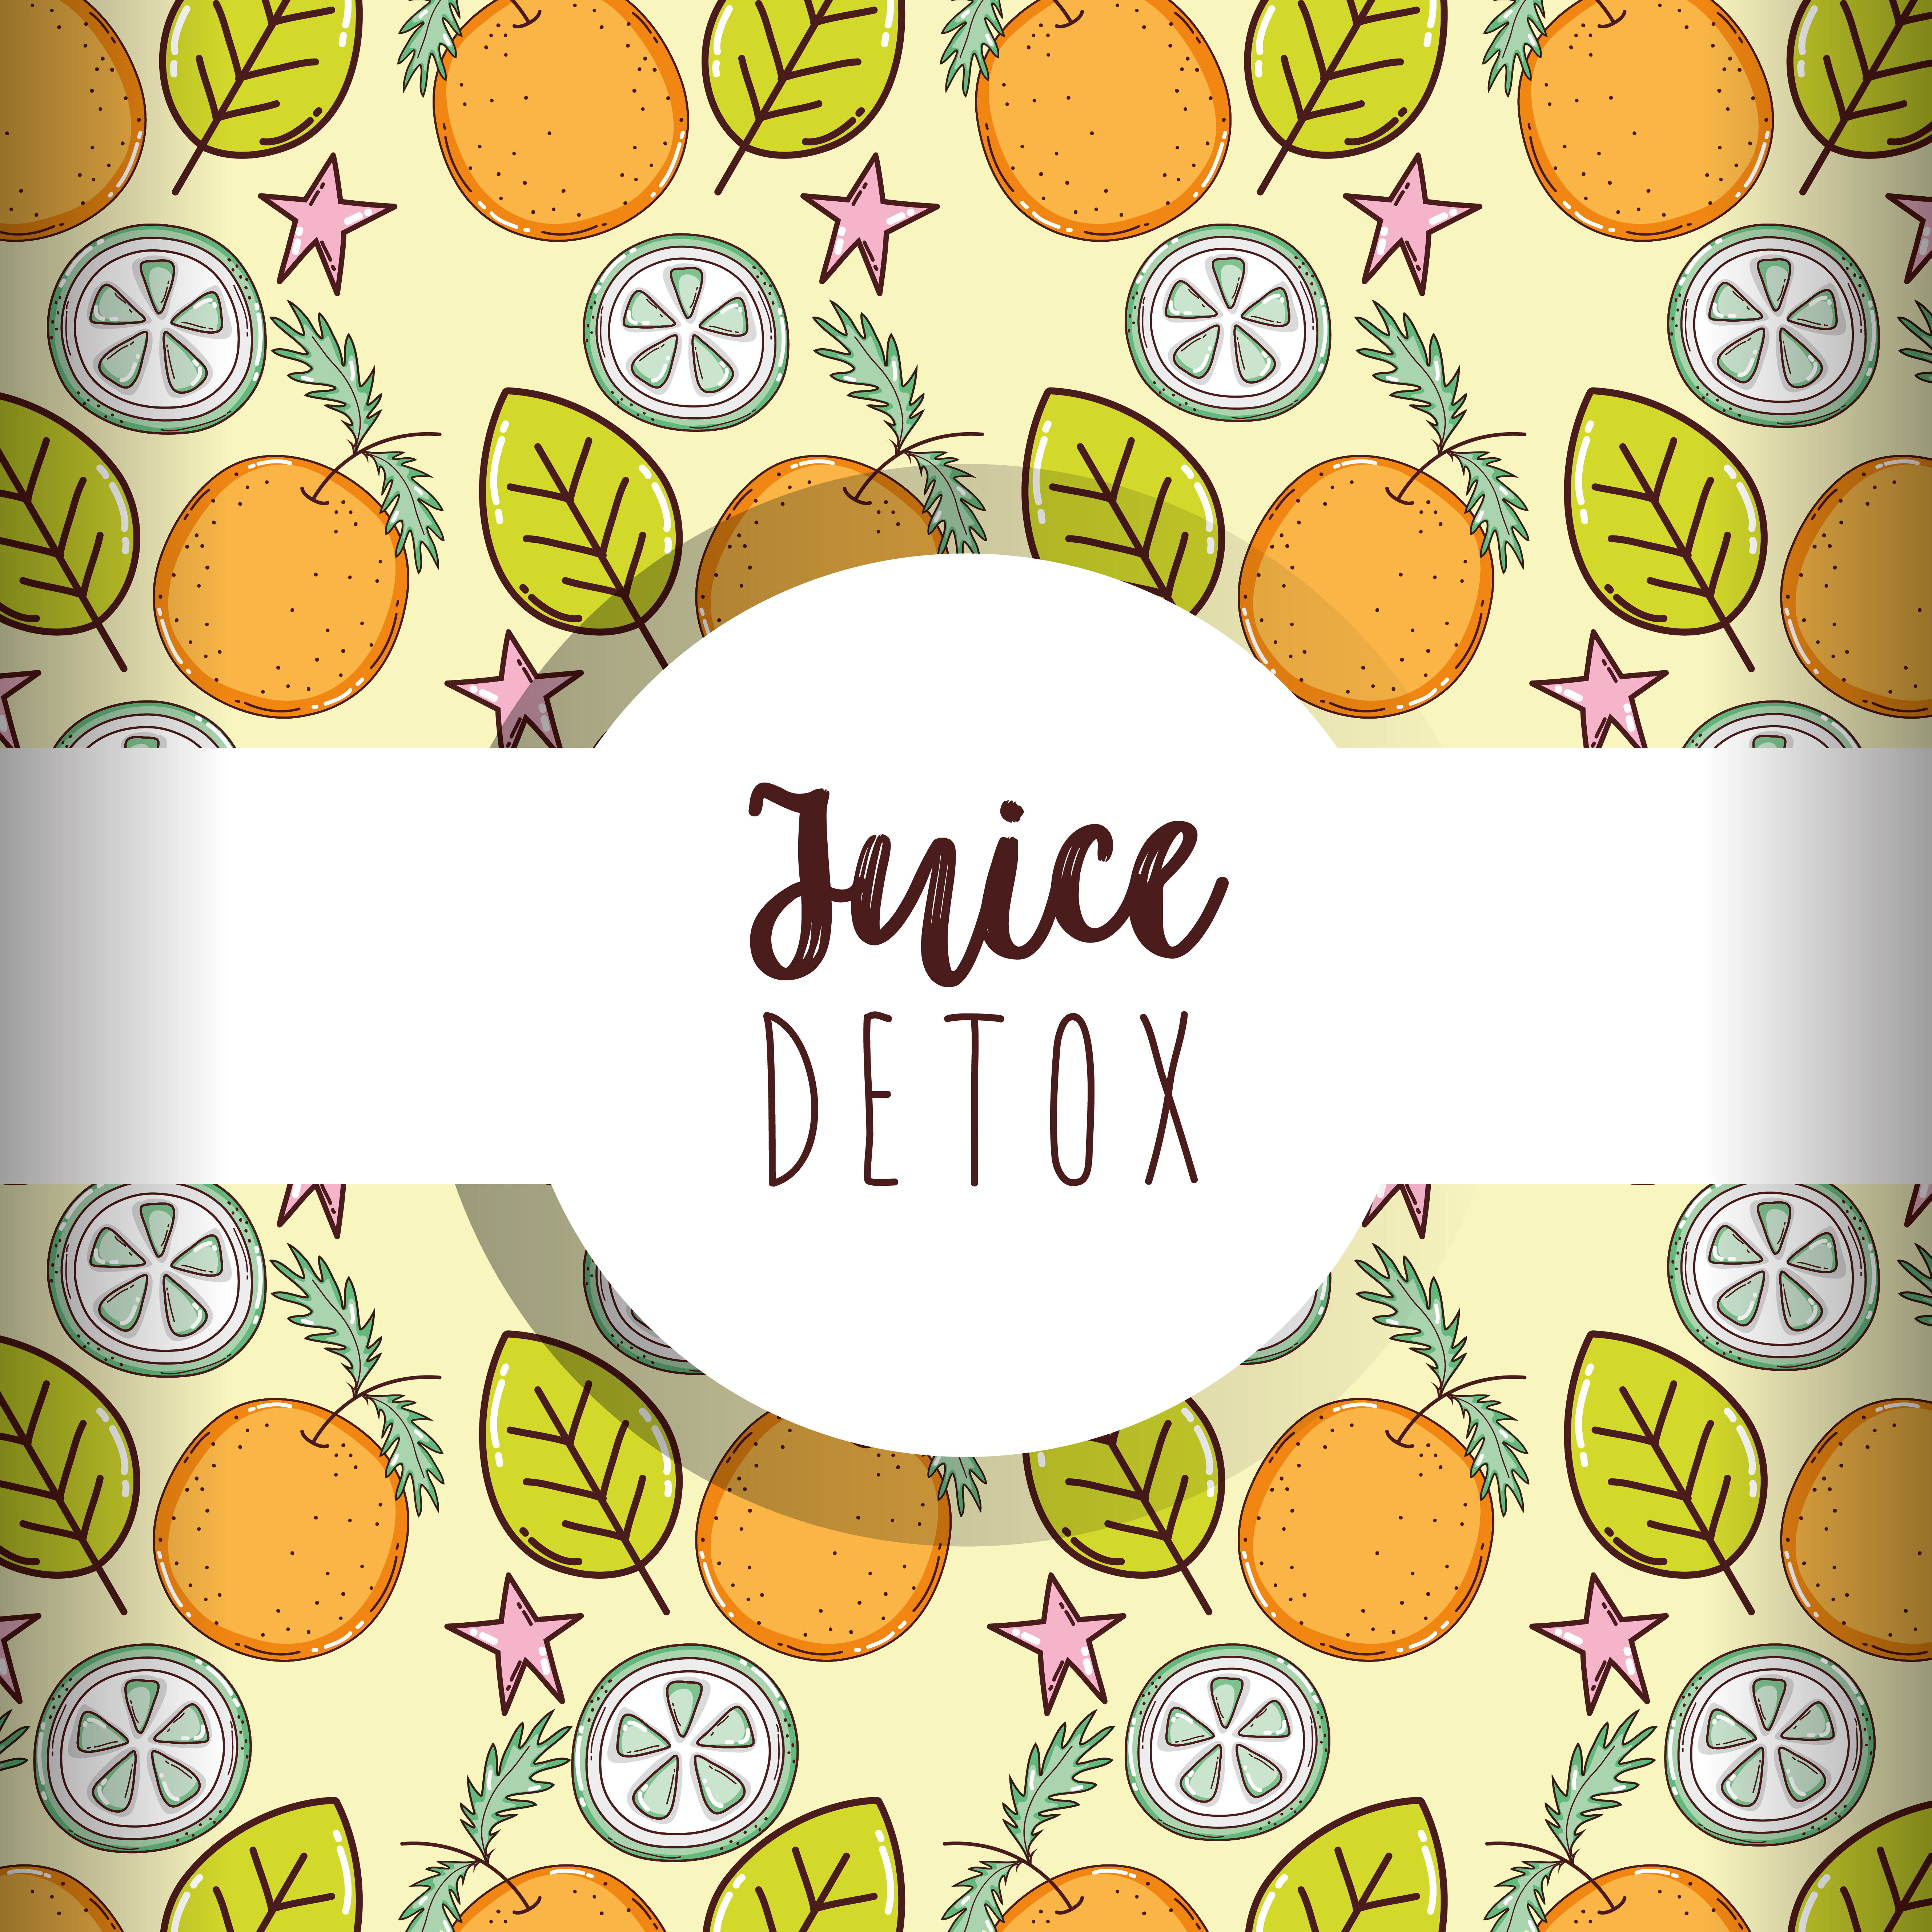 Juice Detox Background Download Free Vectors Clipart Graphics Vector Art